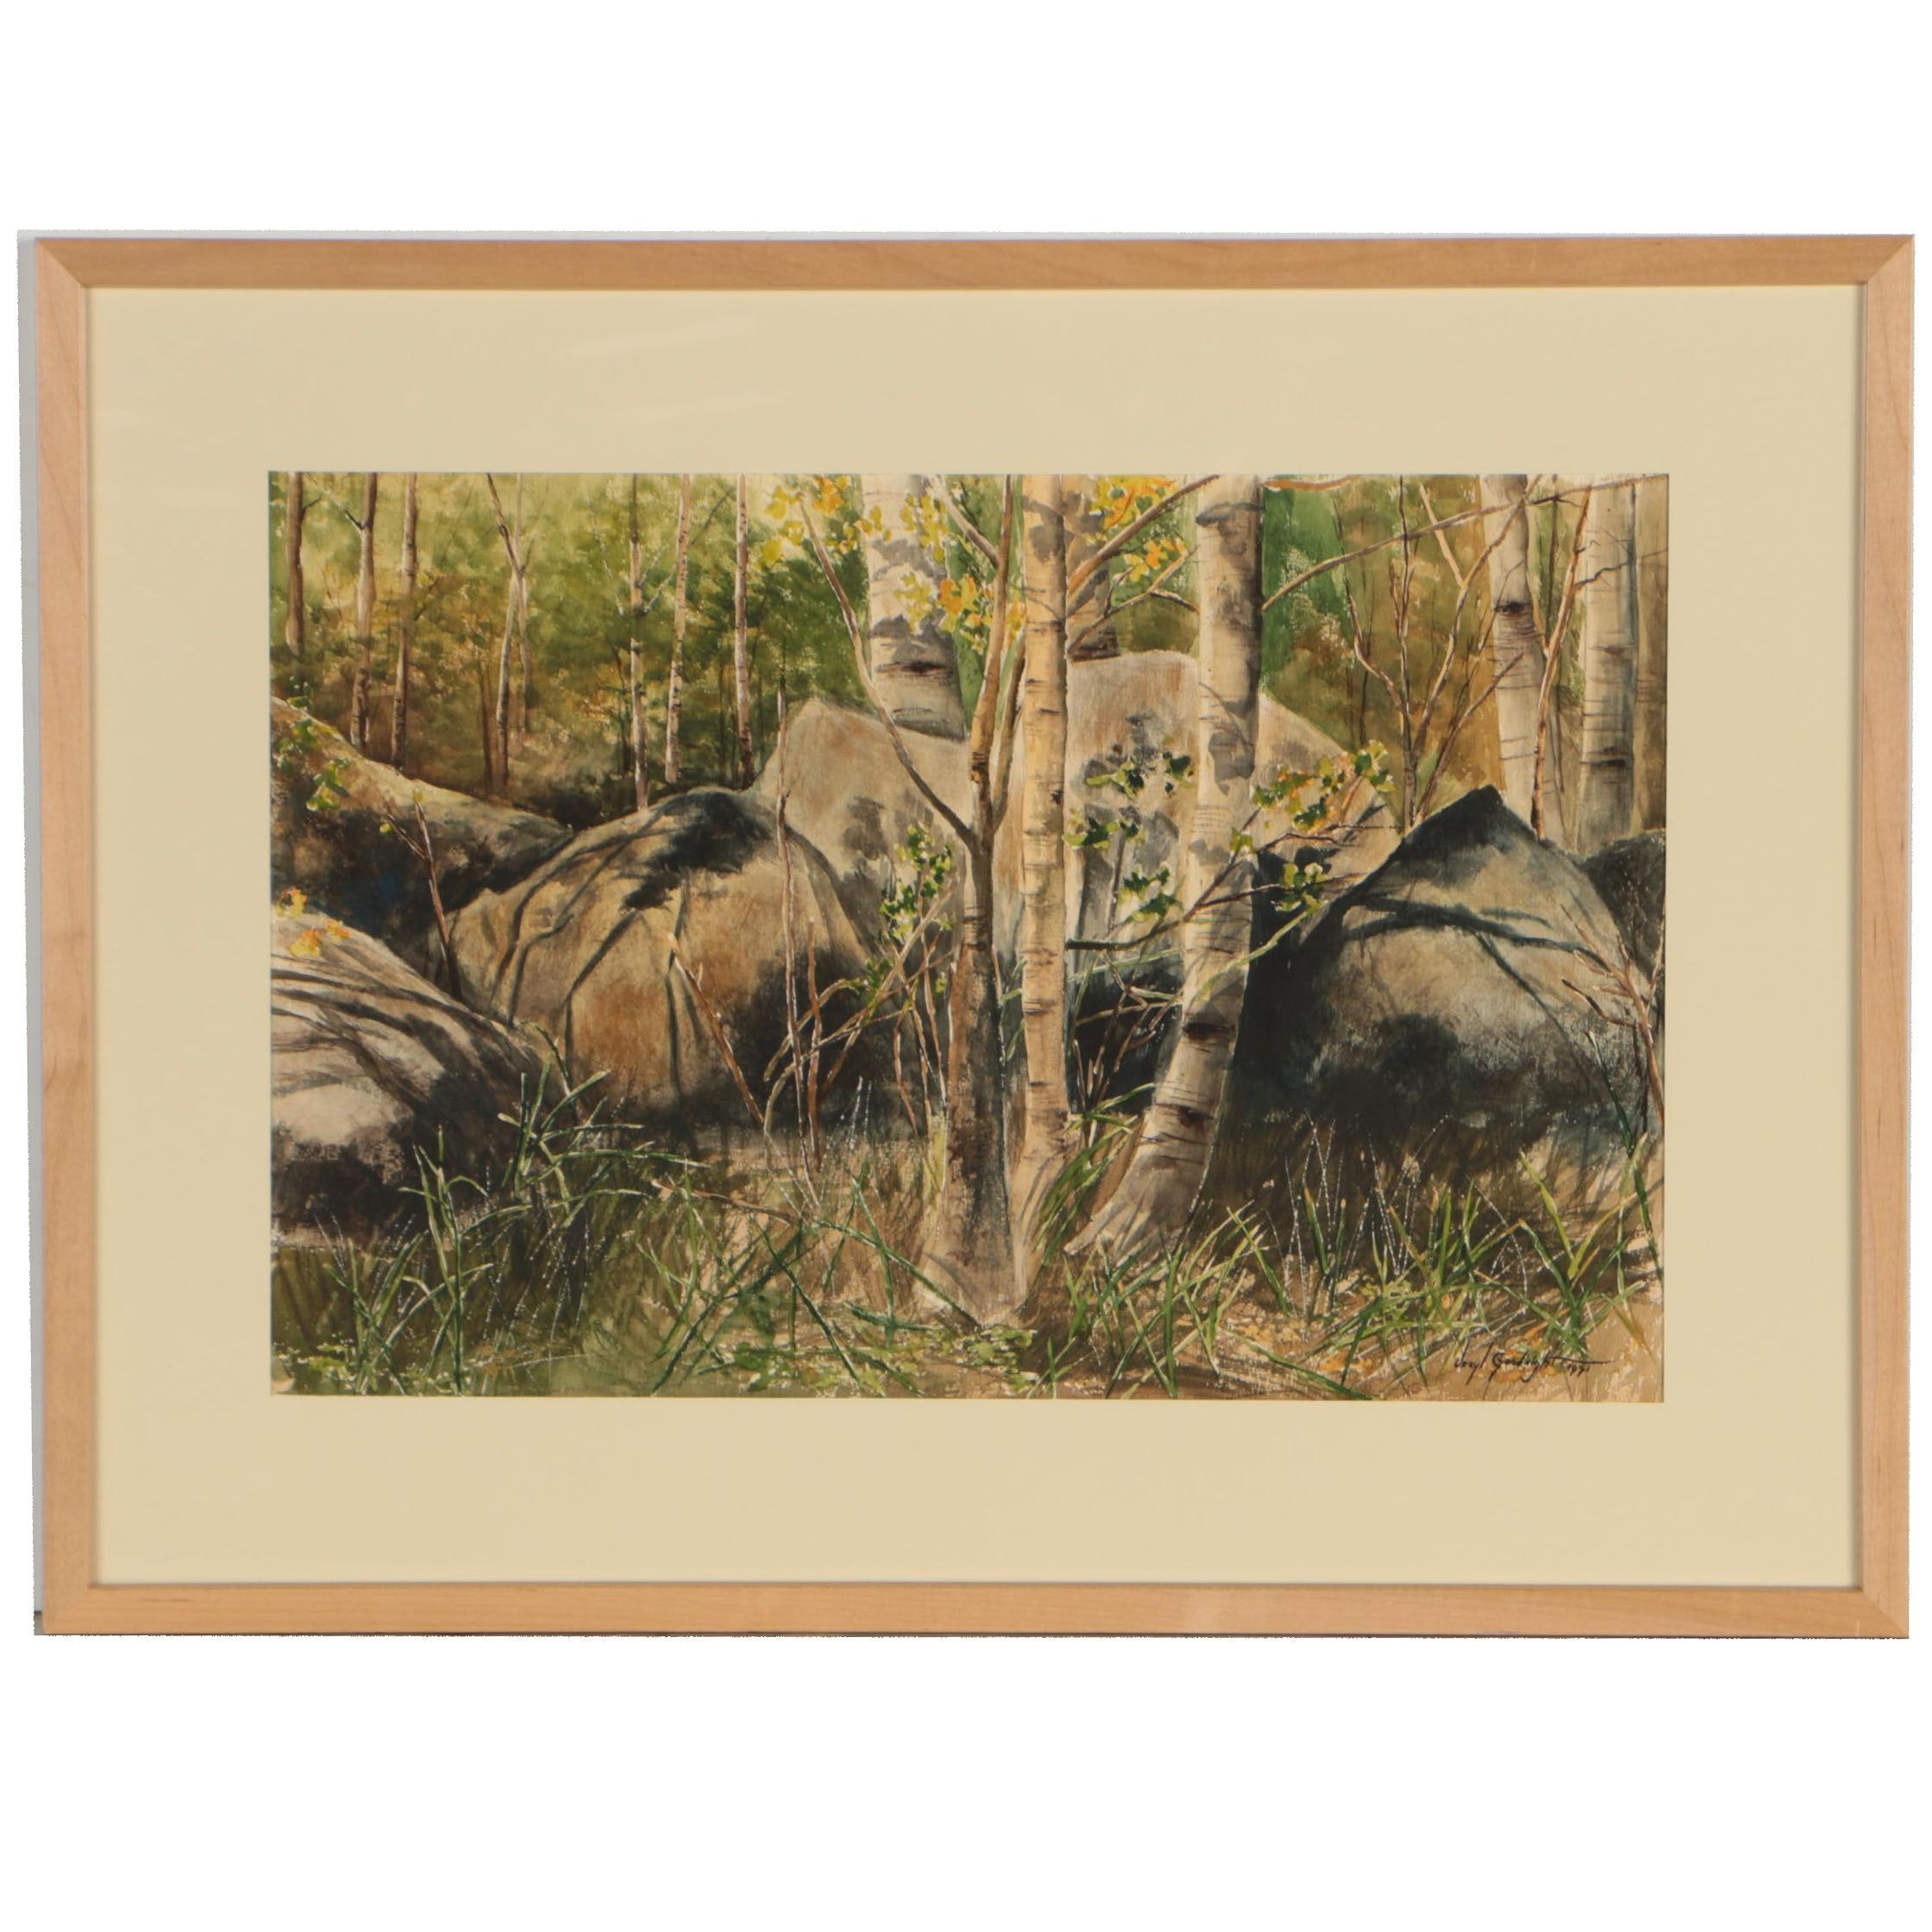 Veryl Goodnight 1971 Gouache and Watercolor Painting of Woodland Landscape